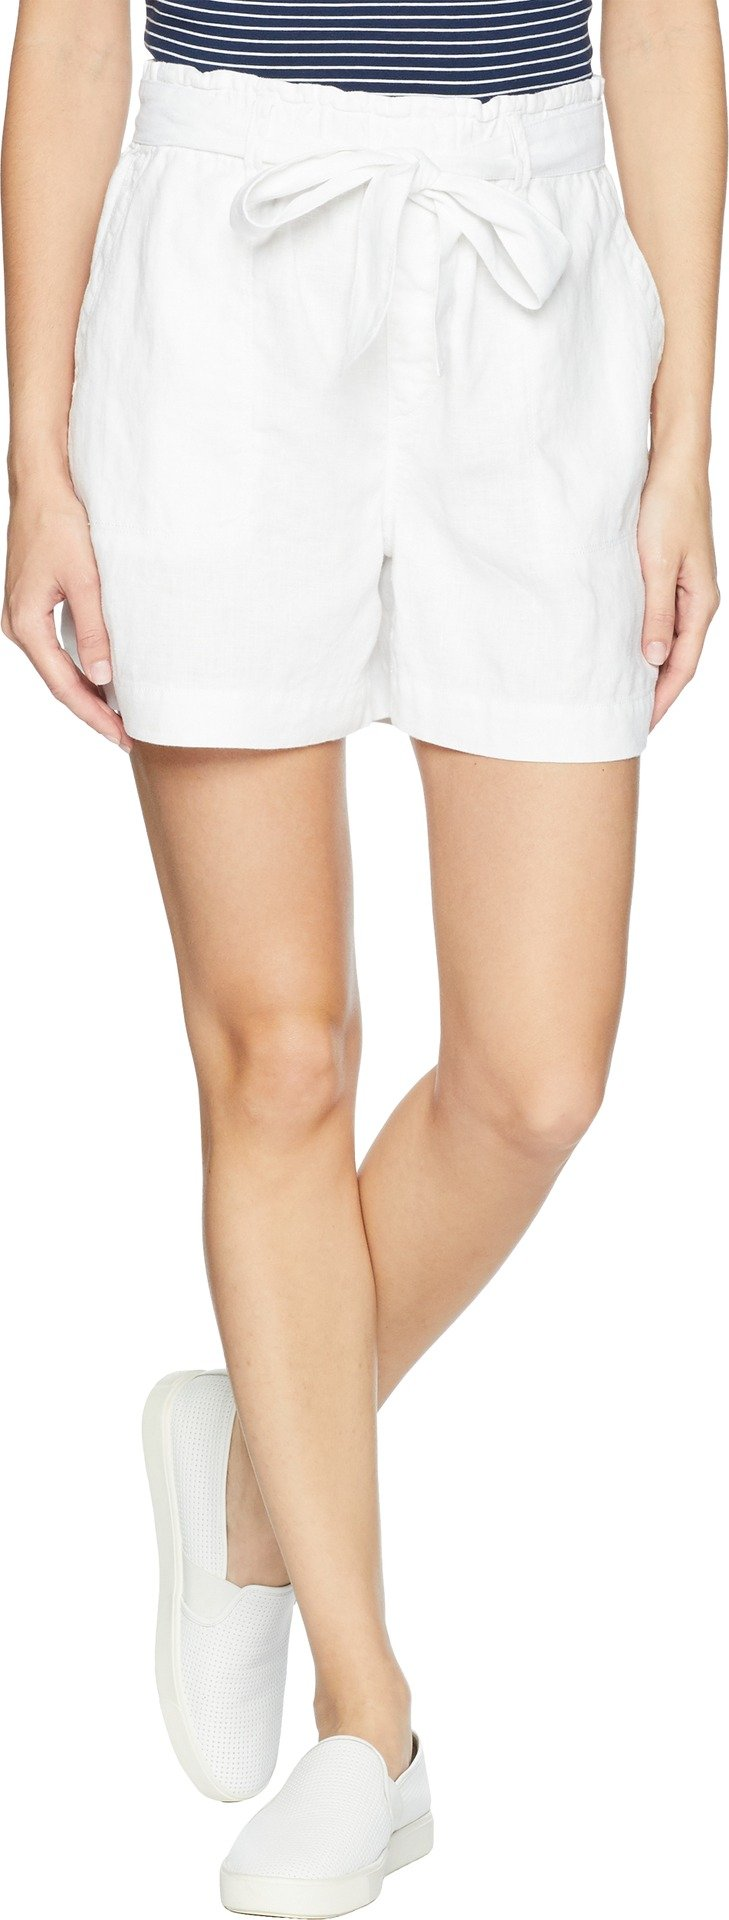 Sanctuary Women's Muse Tie Waist Shorts White Medium 5